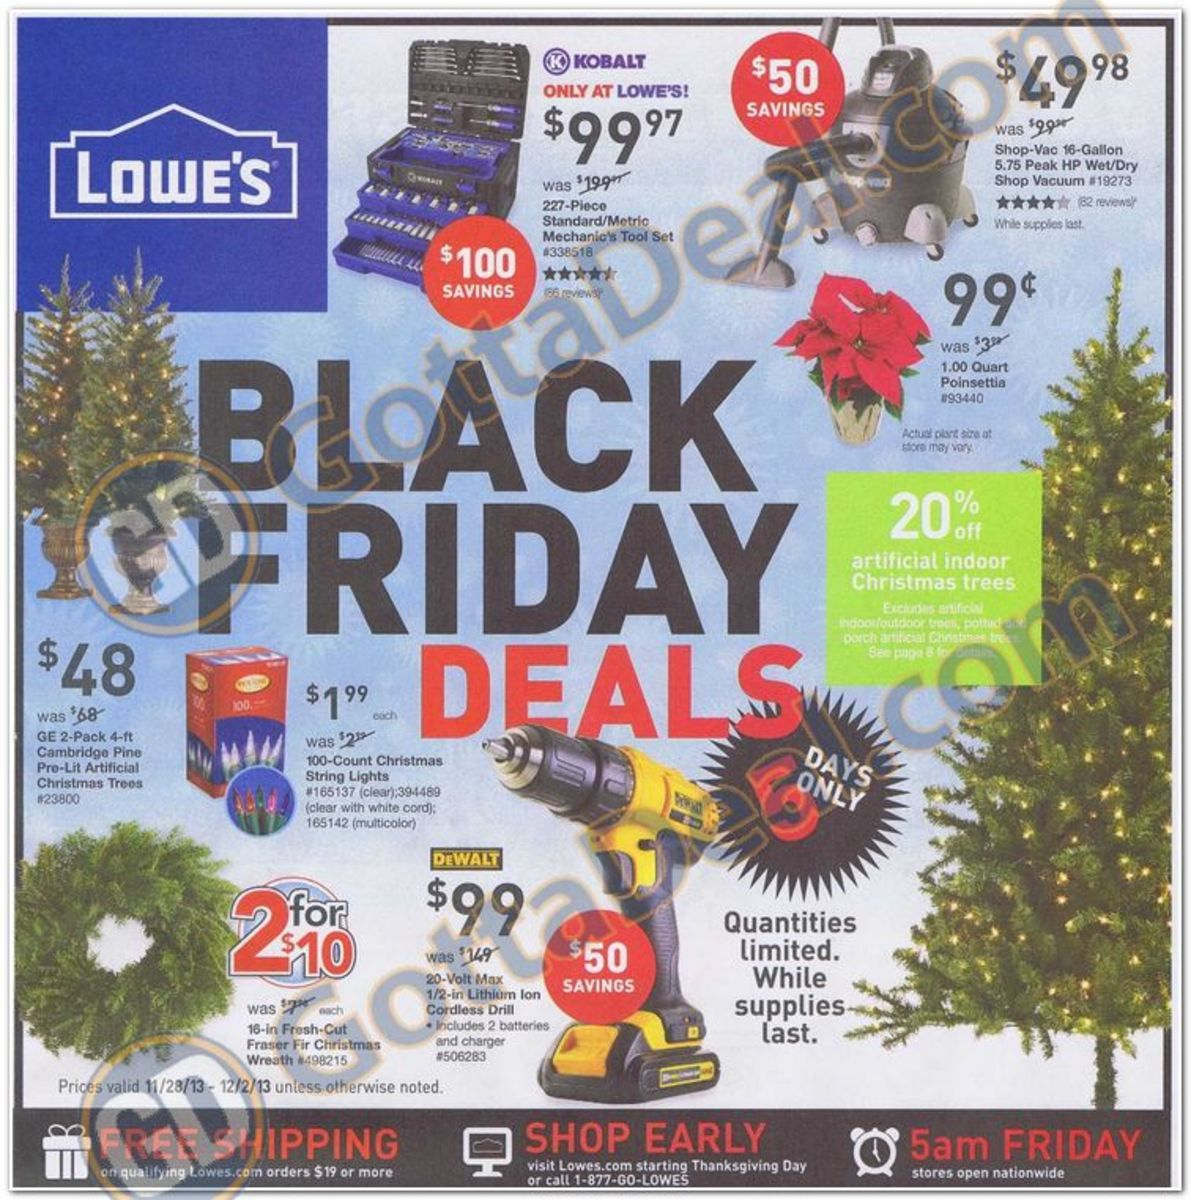 Lowes Christmas Hours.Lowe S Black Friday Ad 2013 Black Friday 2013 Ads Black